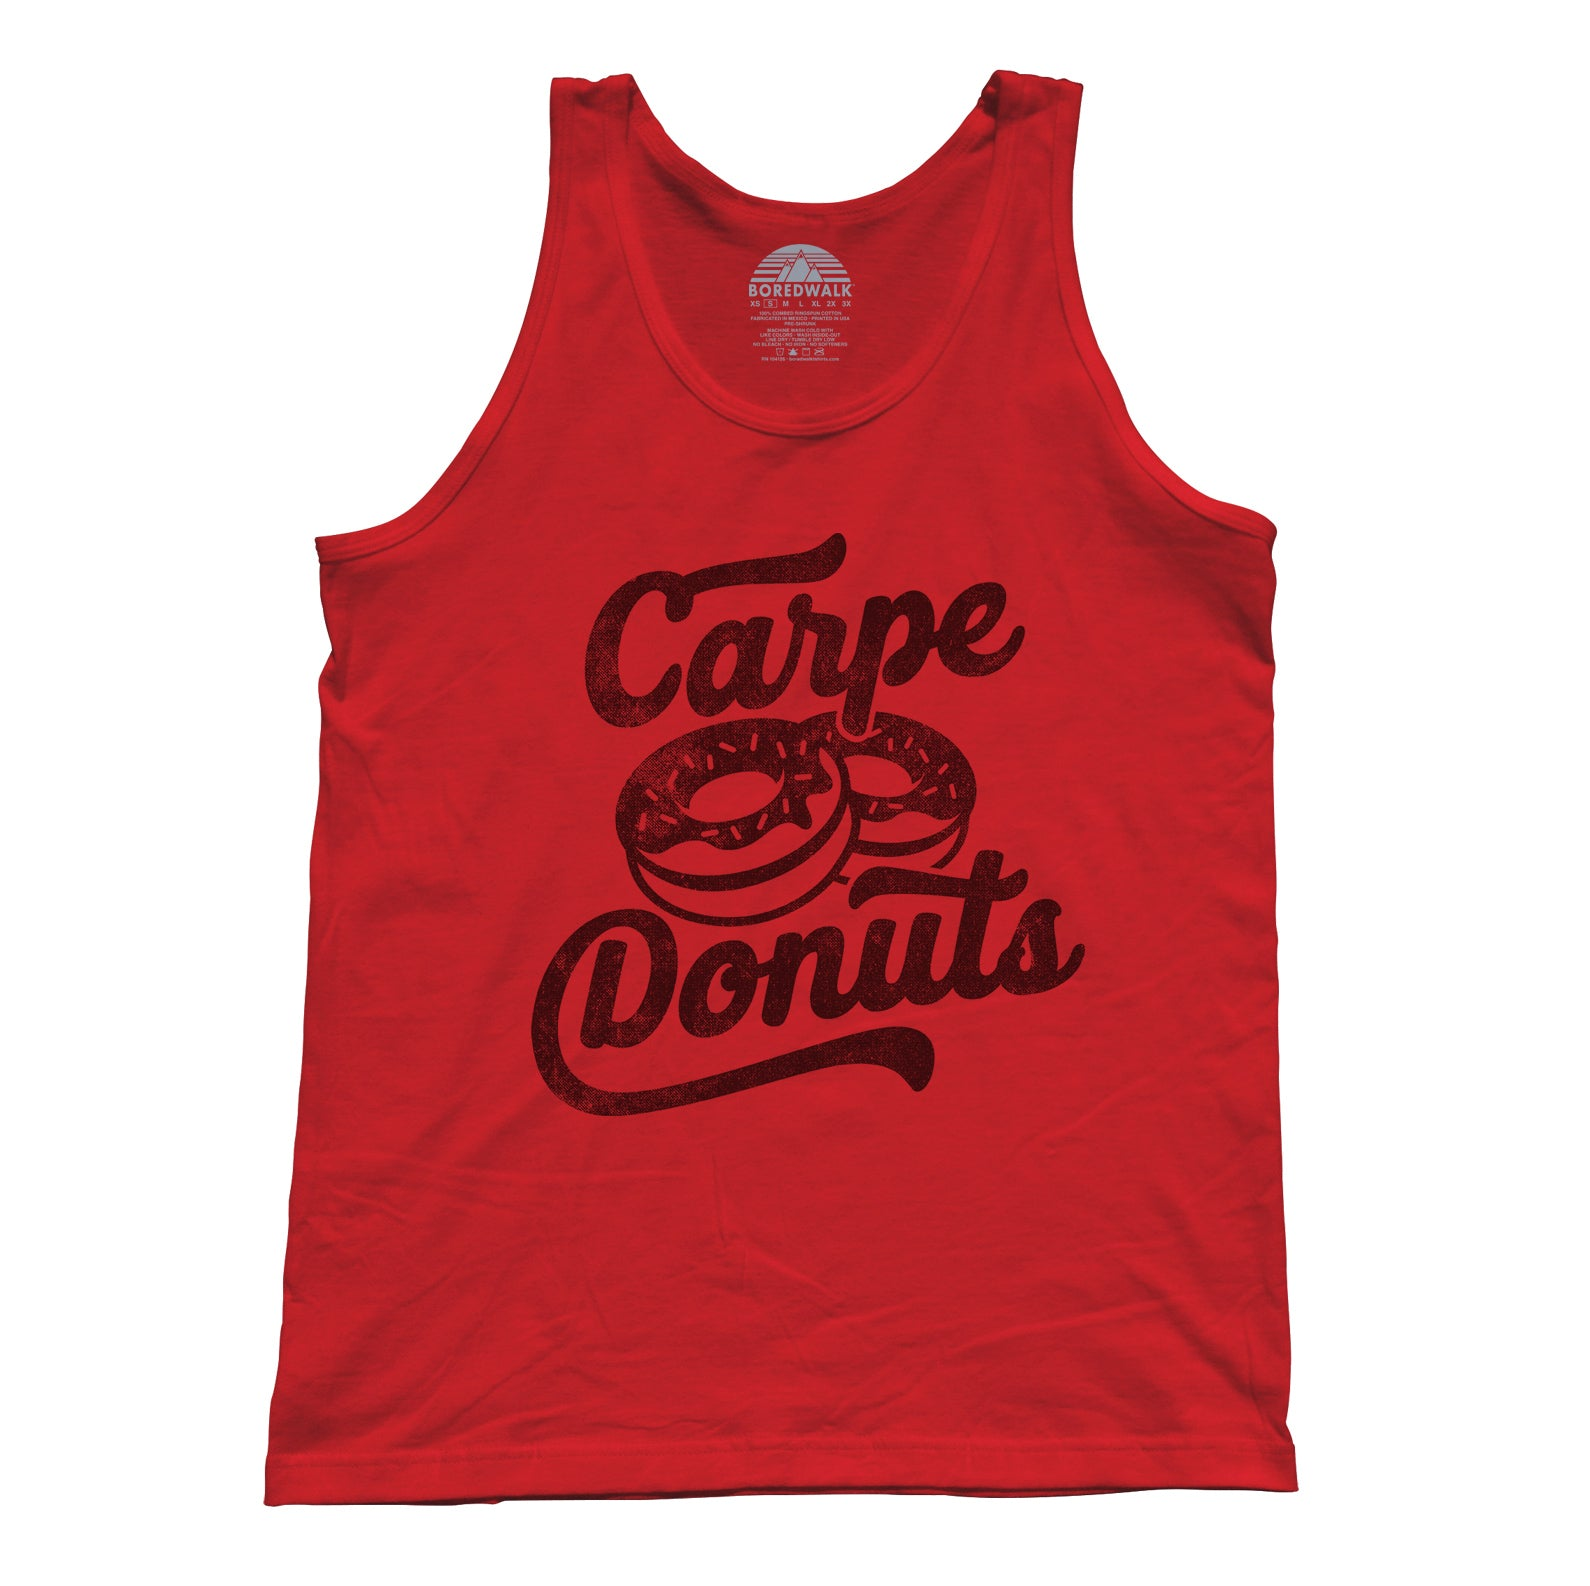 Unisex Carpe Donuts Tank Top - Funny Donut Shirt